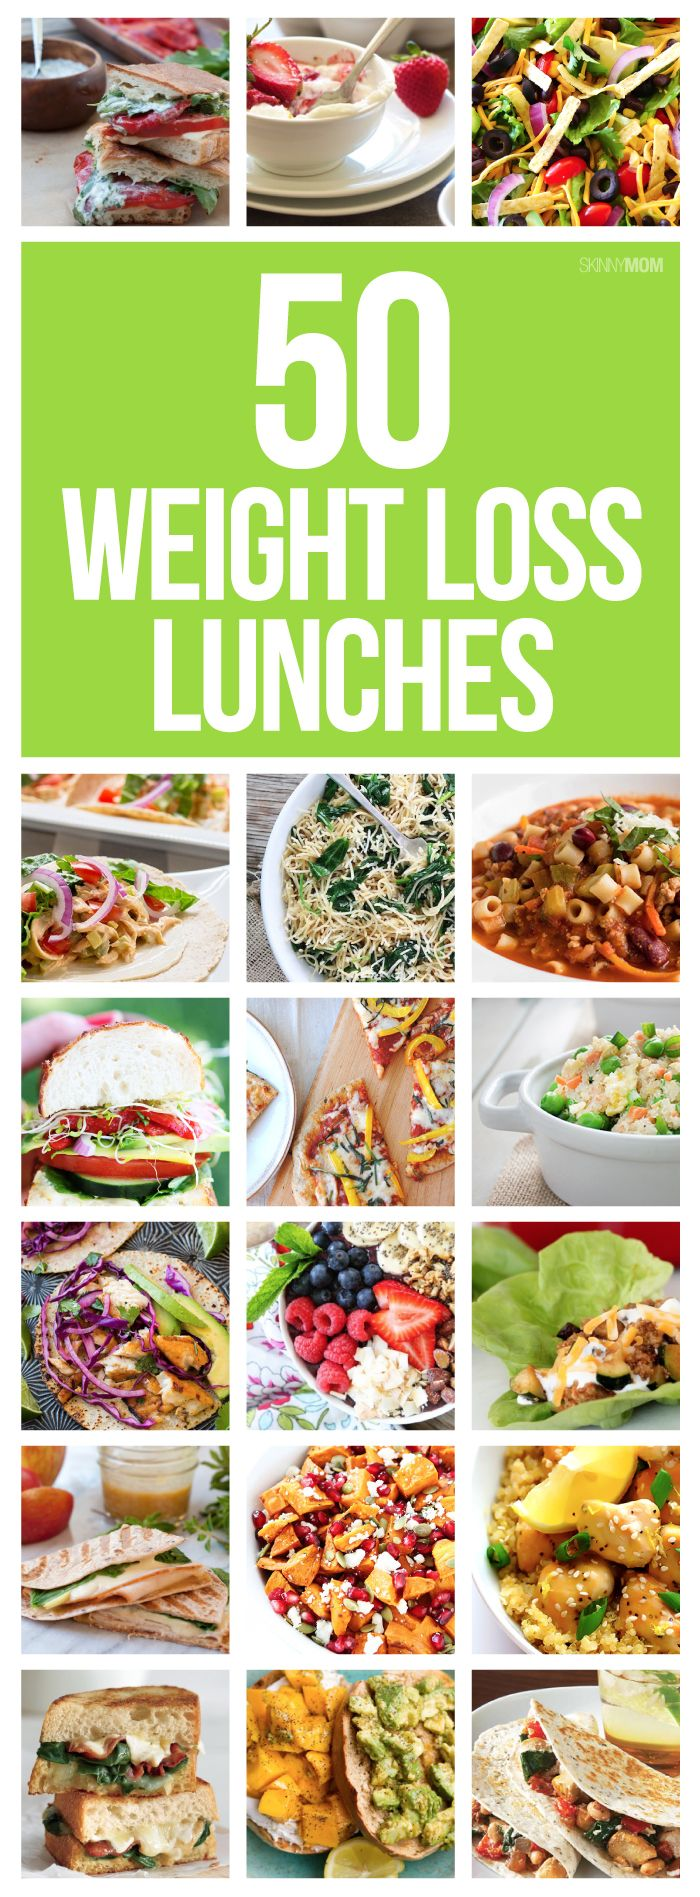 384 Best Images About Pageant Diet On Pinterest